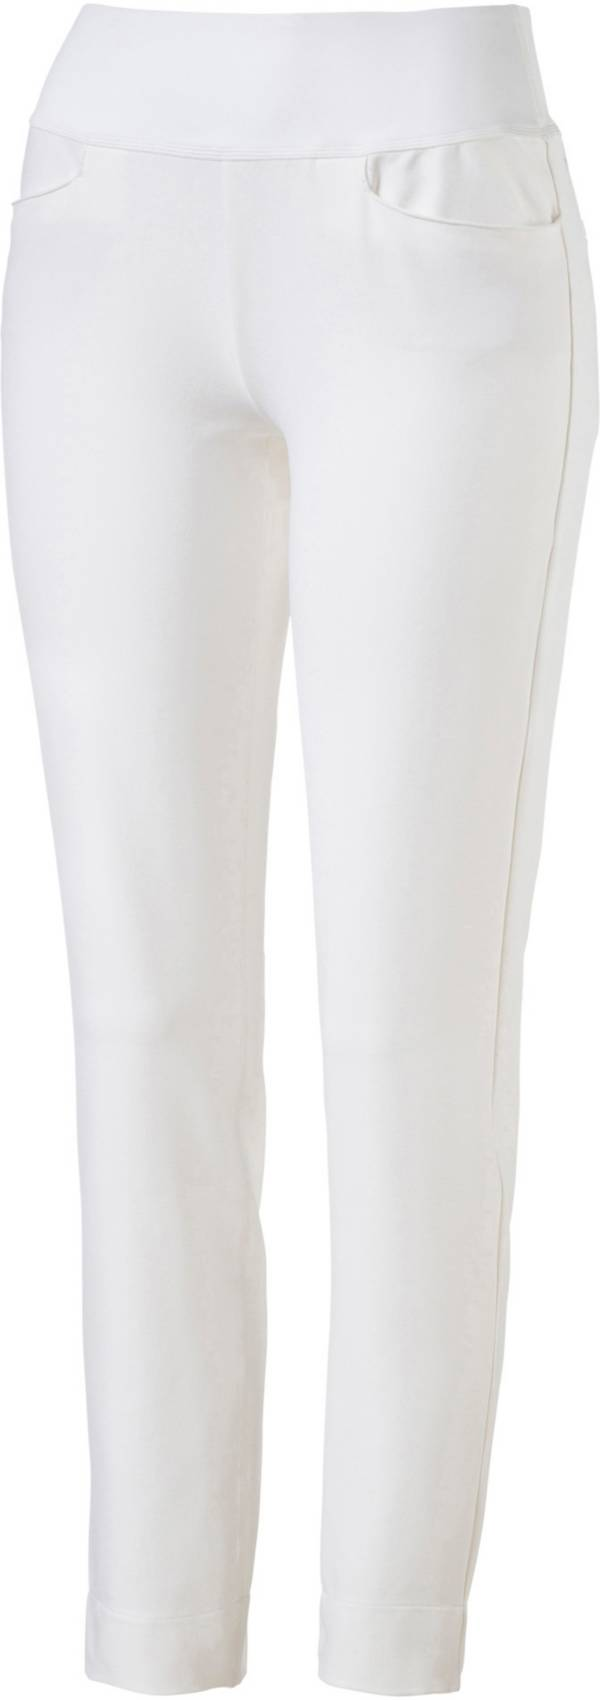 PUMA Women's PWRSHAPE Golf Pants product image